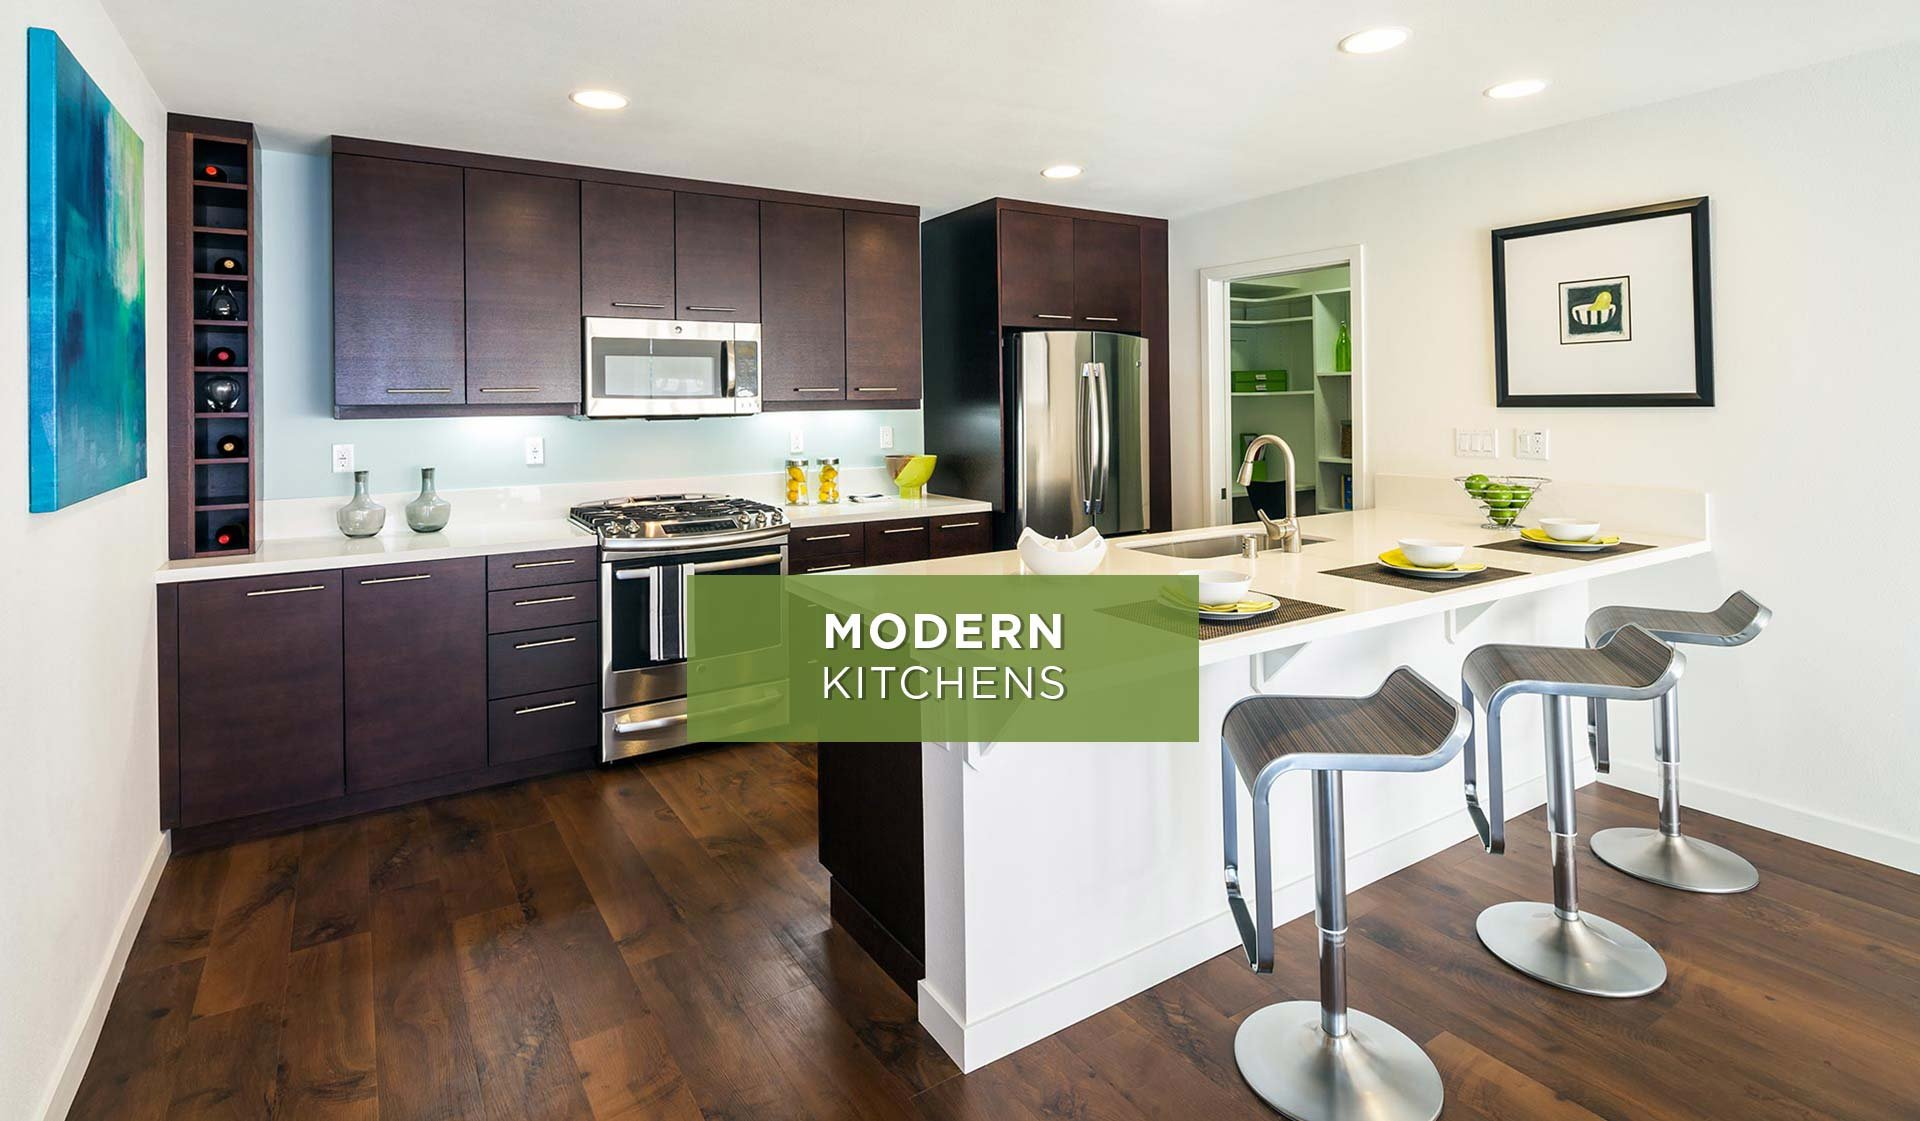 Preserve at Marin Apartment Homes - Kitchen - Corte Madera, CA